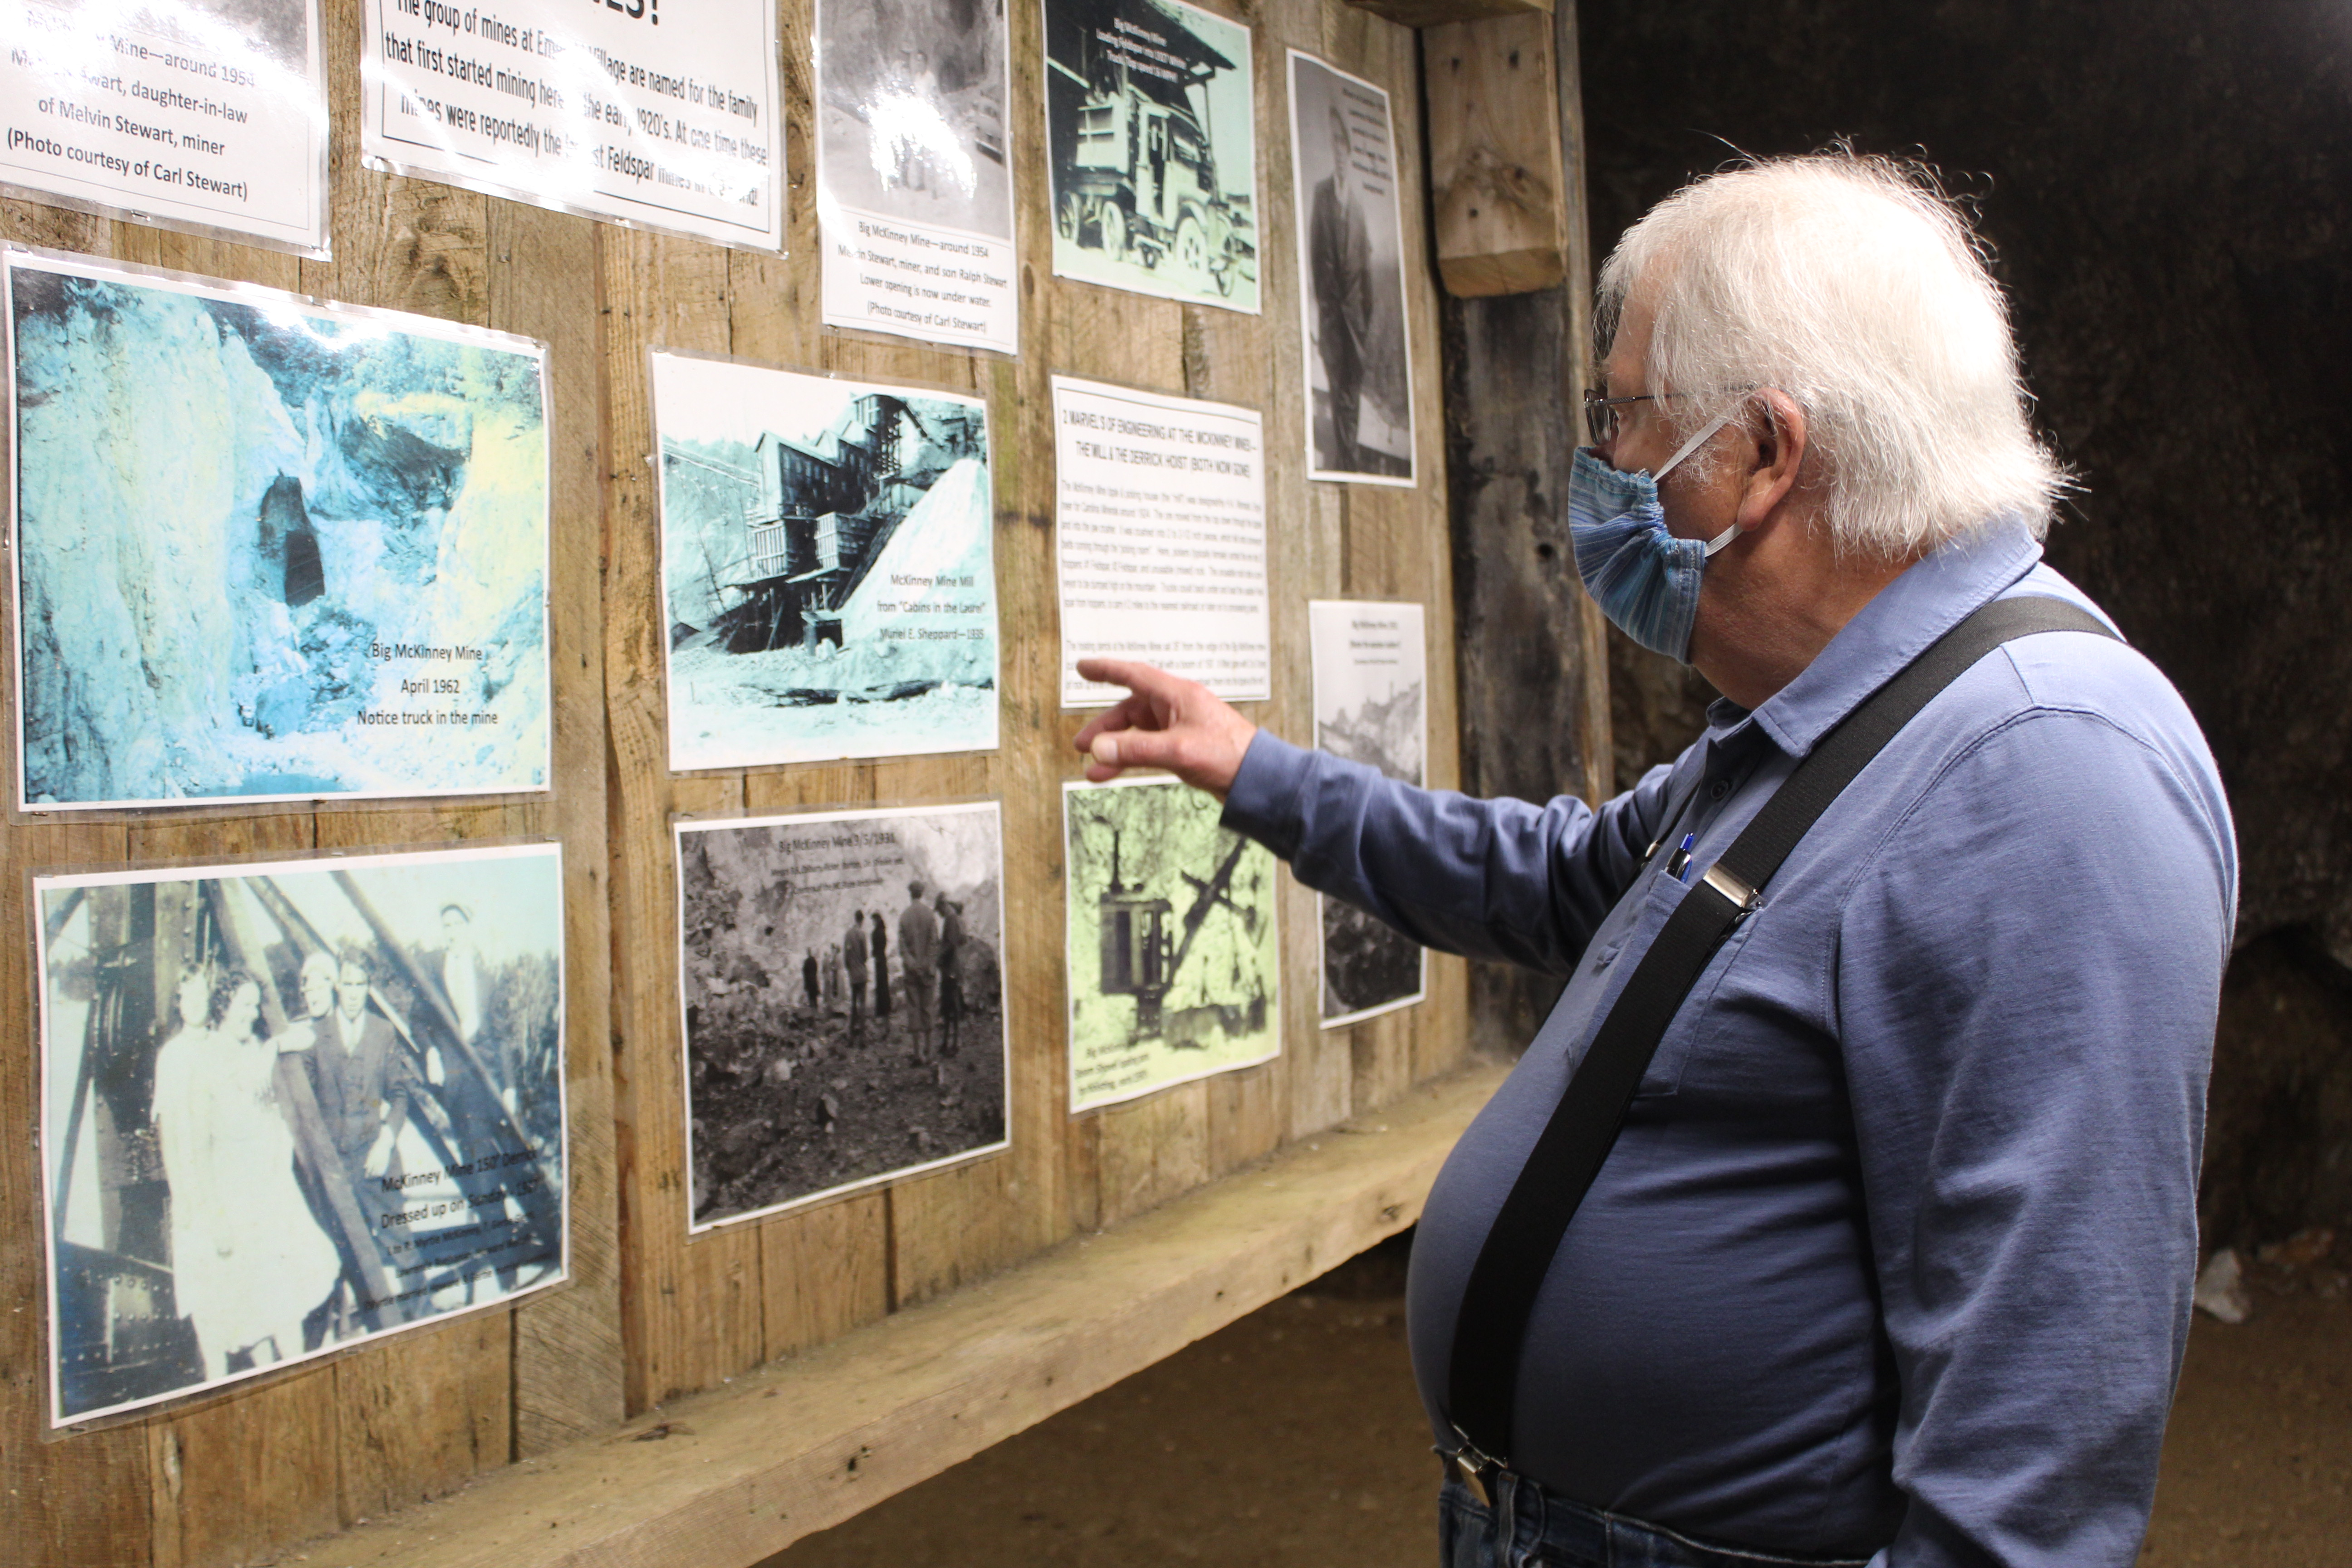 Emerald Village Owner Alan Schabilion points to historic photos of old mining operations displayed inside the Bon Ami Mine in Little Switzerland. (MNJ photo/Juliana Walker)